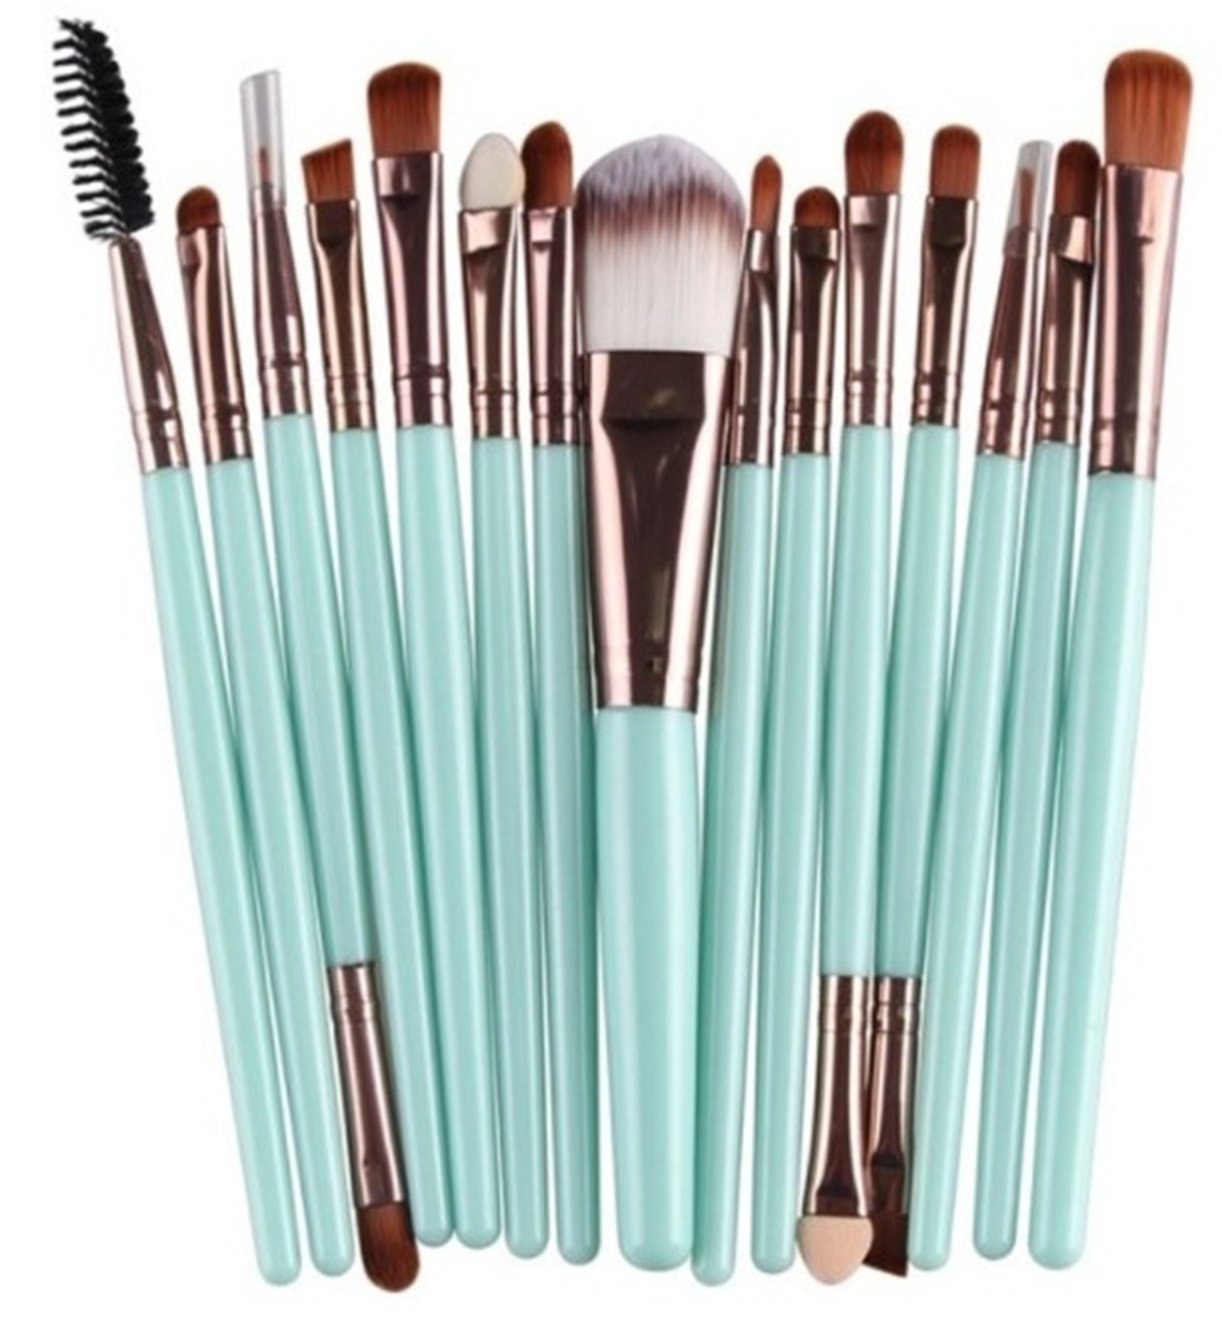 15 Piece Makeup Brushes Set Eye Shadow Brow Eyeliner Eyelash Lip Power Cosmetic Make Up Tool Foundation Natural Beauty Palette Eyeshadow Fascinating Popular Colorful Rainbow Highlights Kit, Type-13